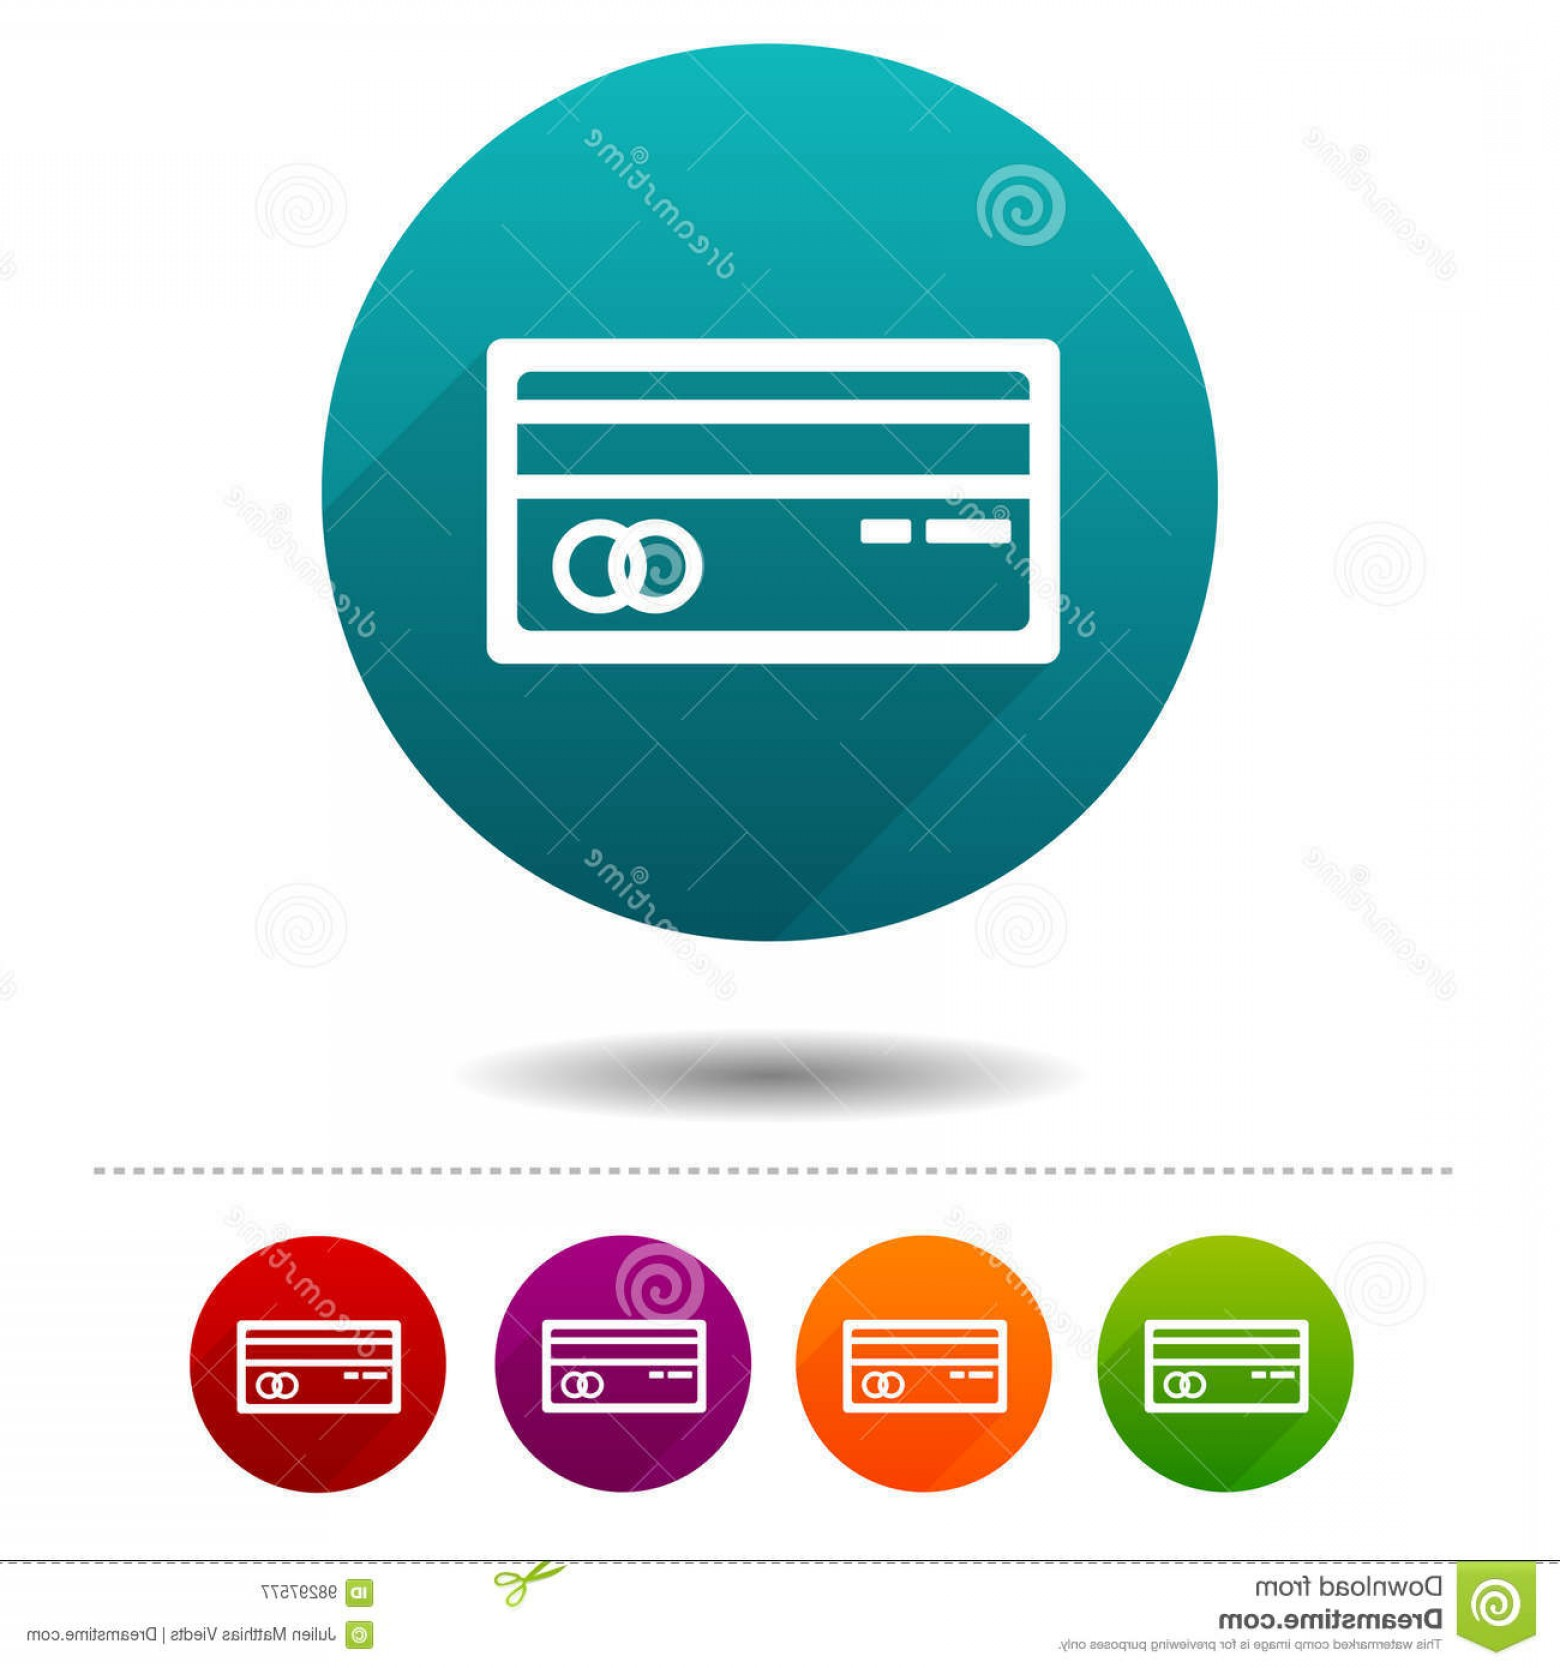 Credit Card Logos Vector: Stock Illustration Credit Card Icons Payment Signs Shopping Symbol Vector Circle Web Buttons Eps Image